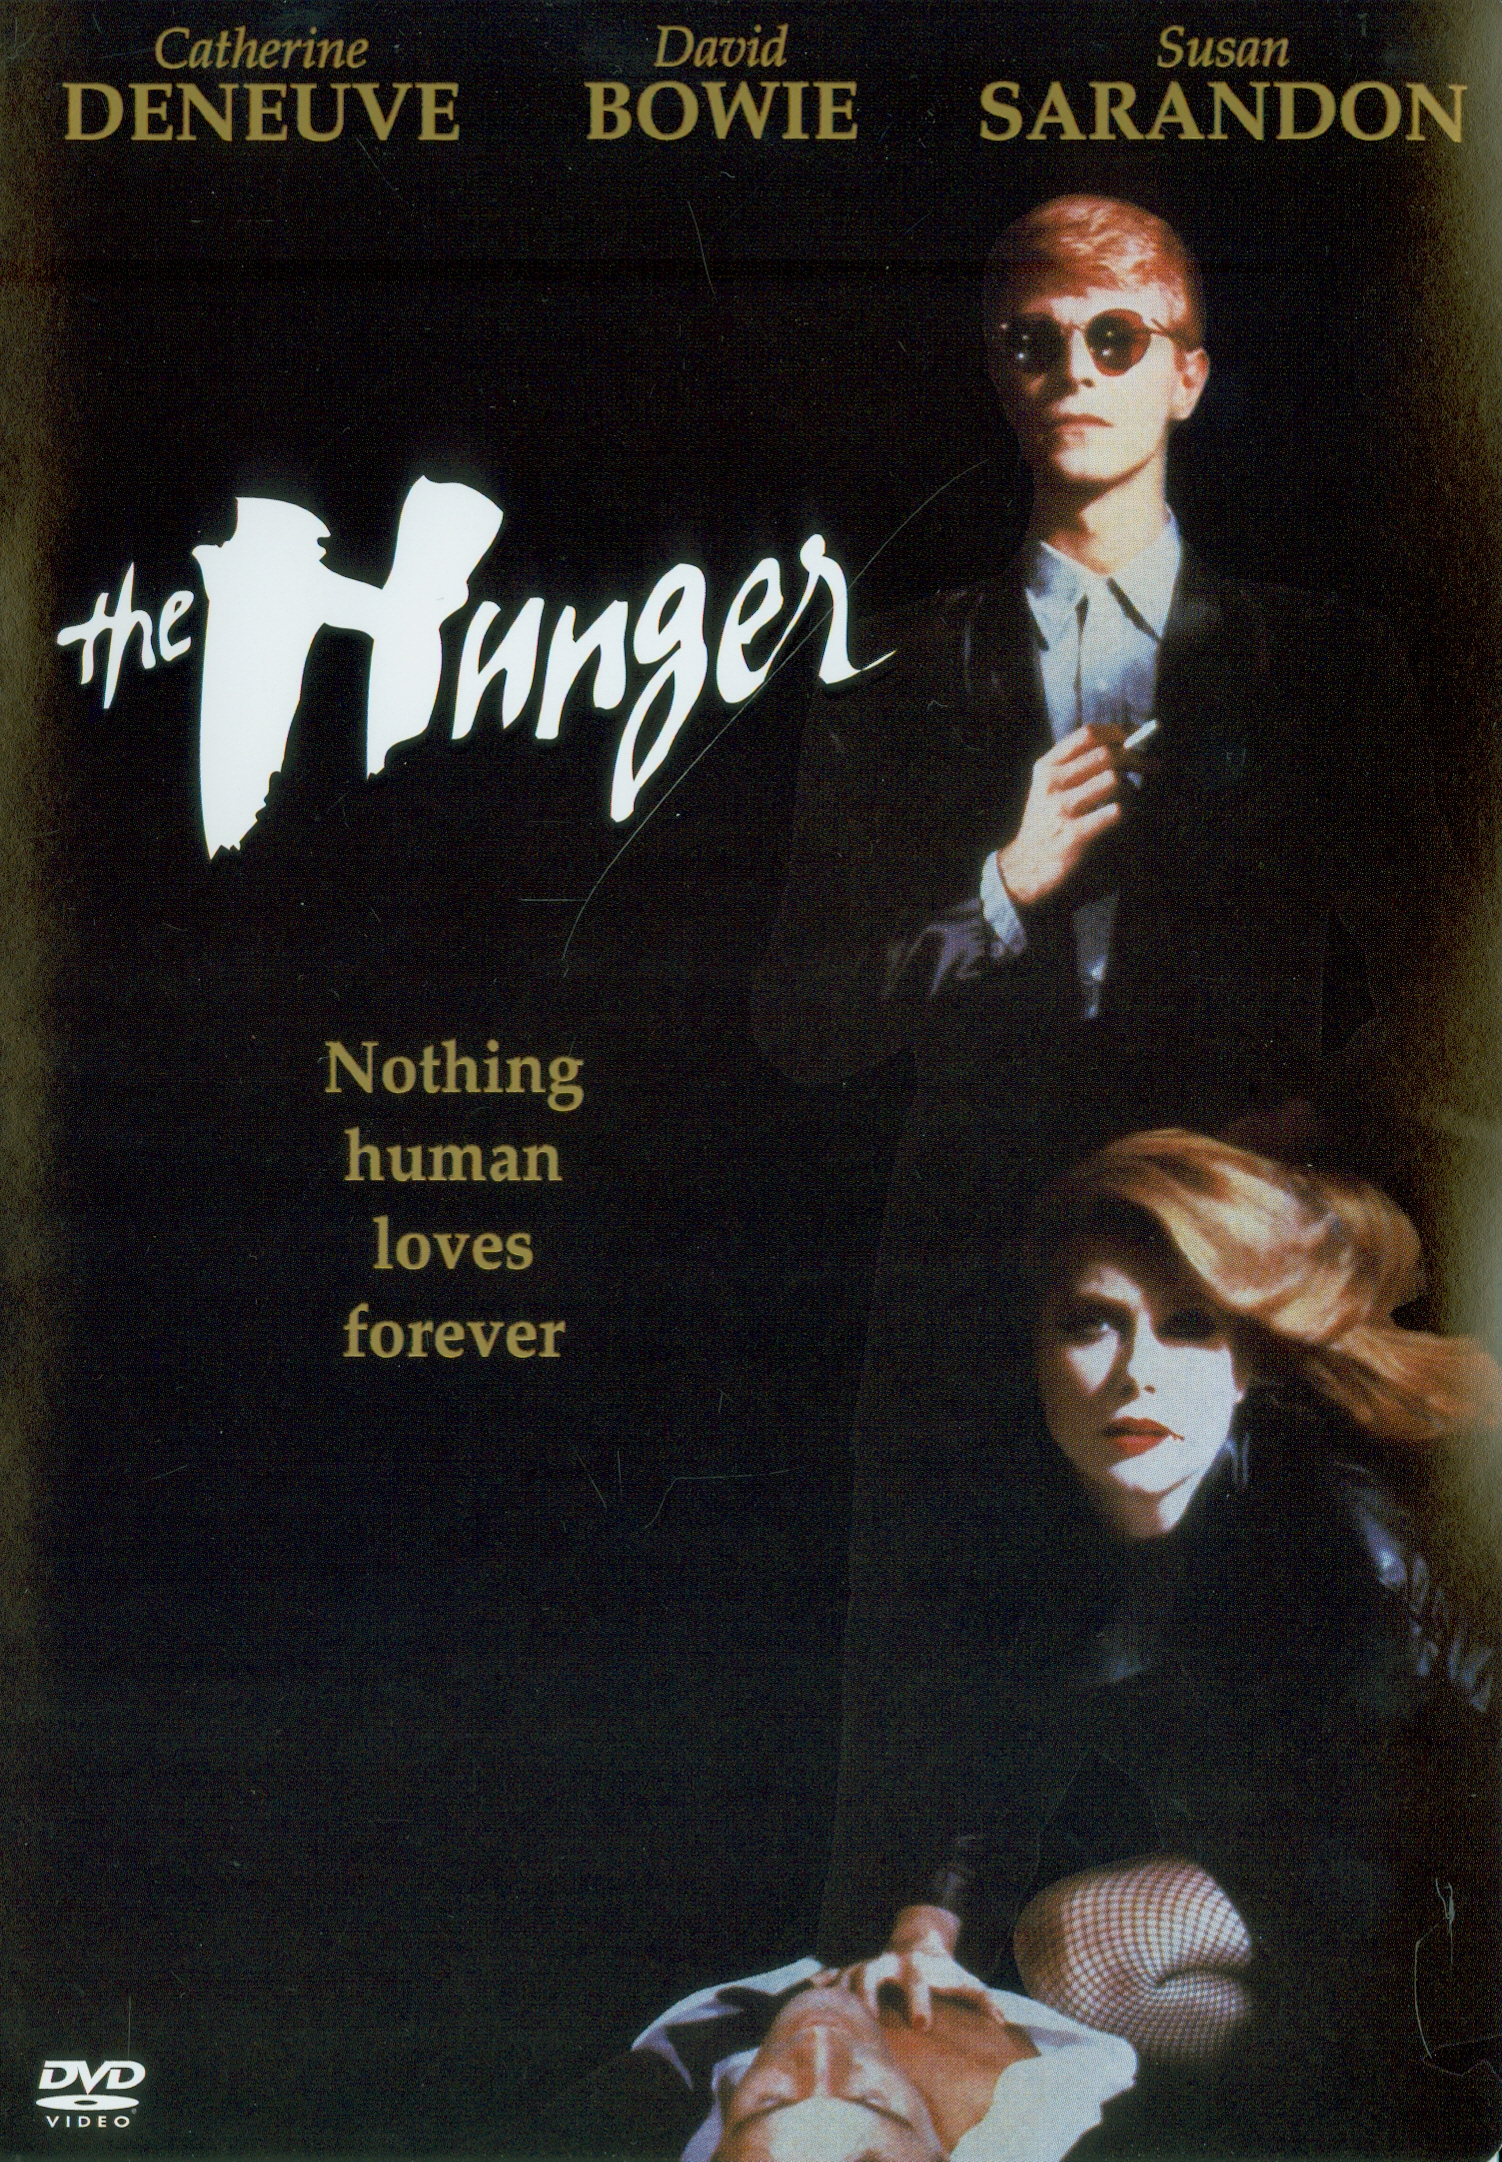 The hunger[videorecording] /Metro-Goldwyn-Mayer presents ; a Richard Shepherd Company production ; screenplay by Ivan Davis and Michael Thomas ; produced by Richard A. Shepherd ; directed by Tony Scott